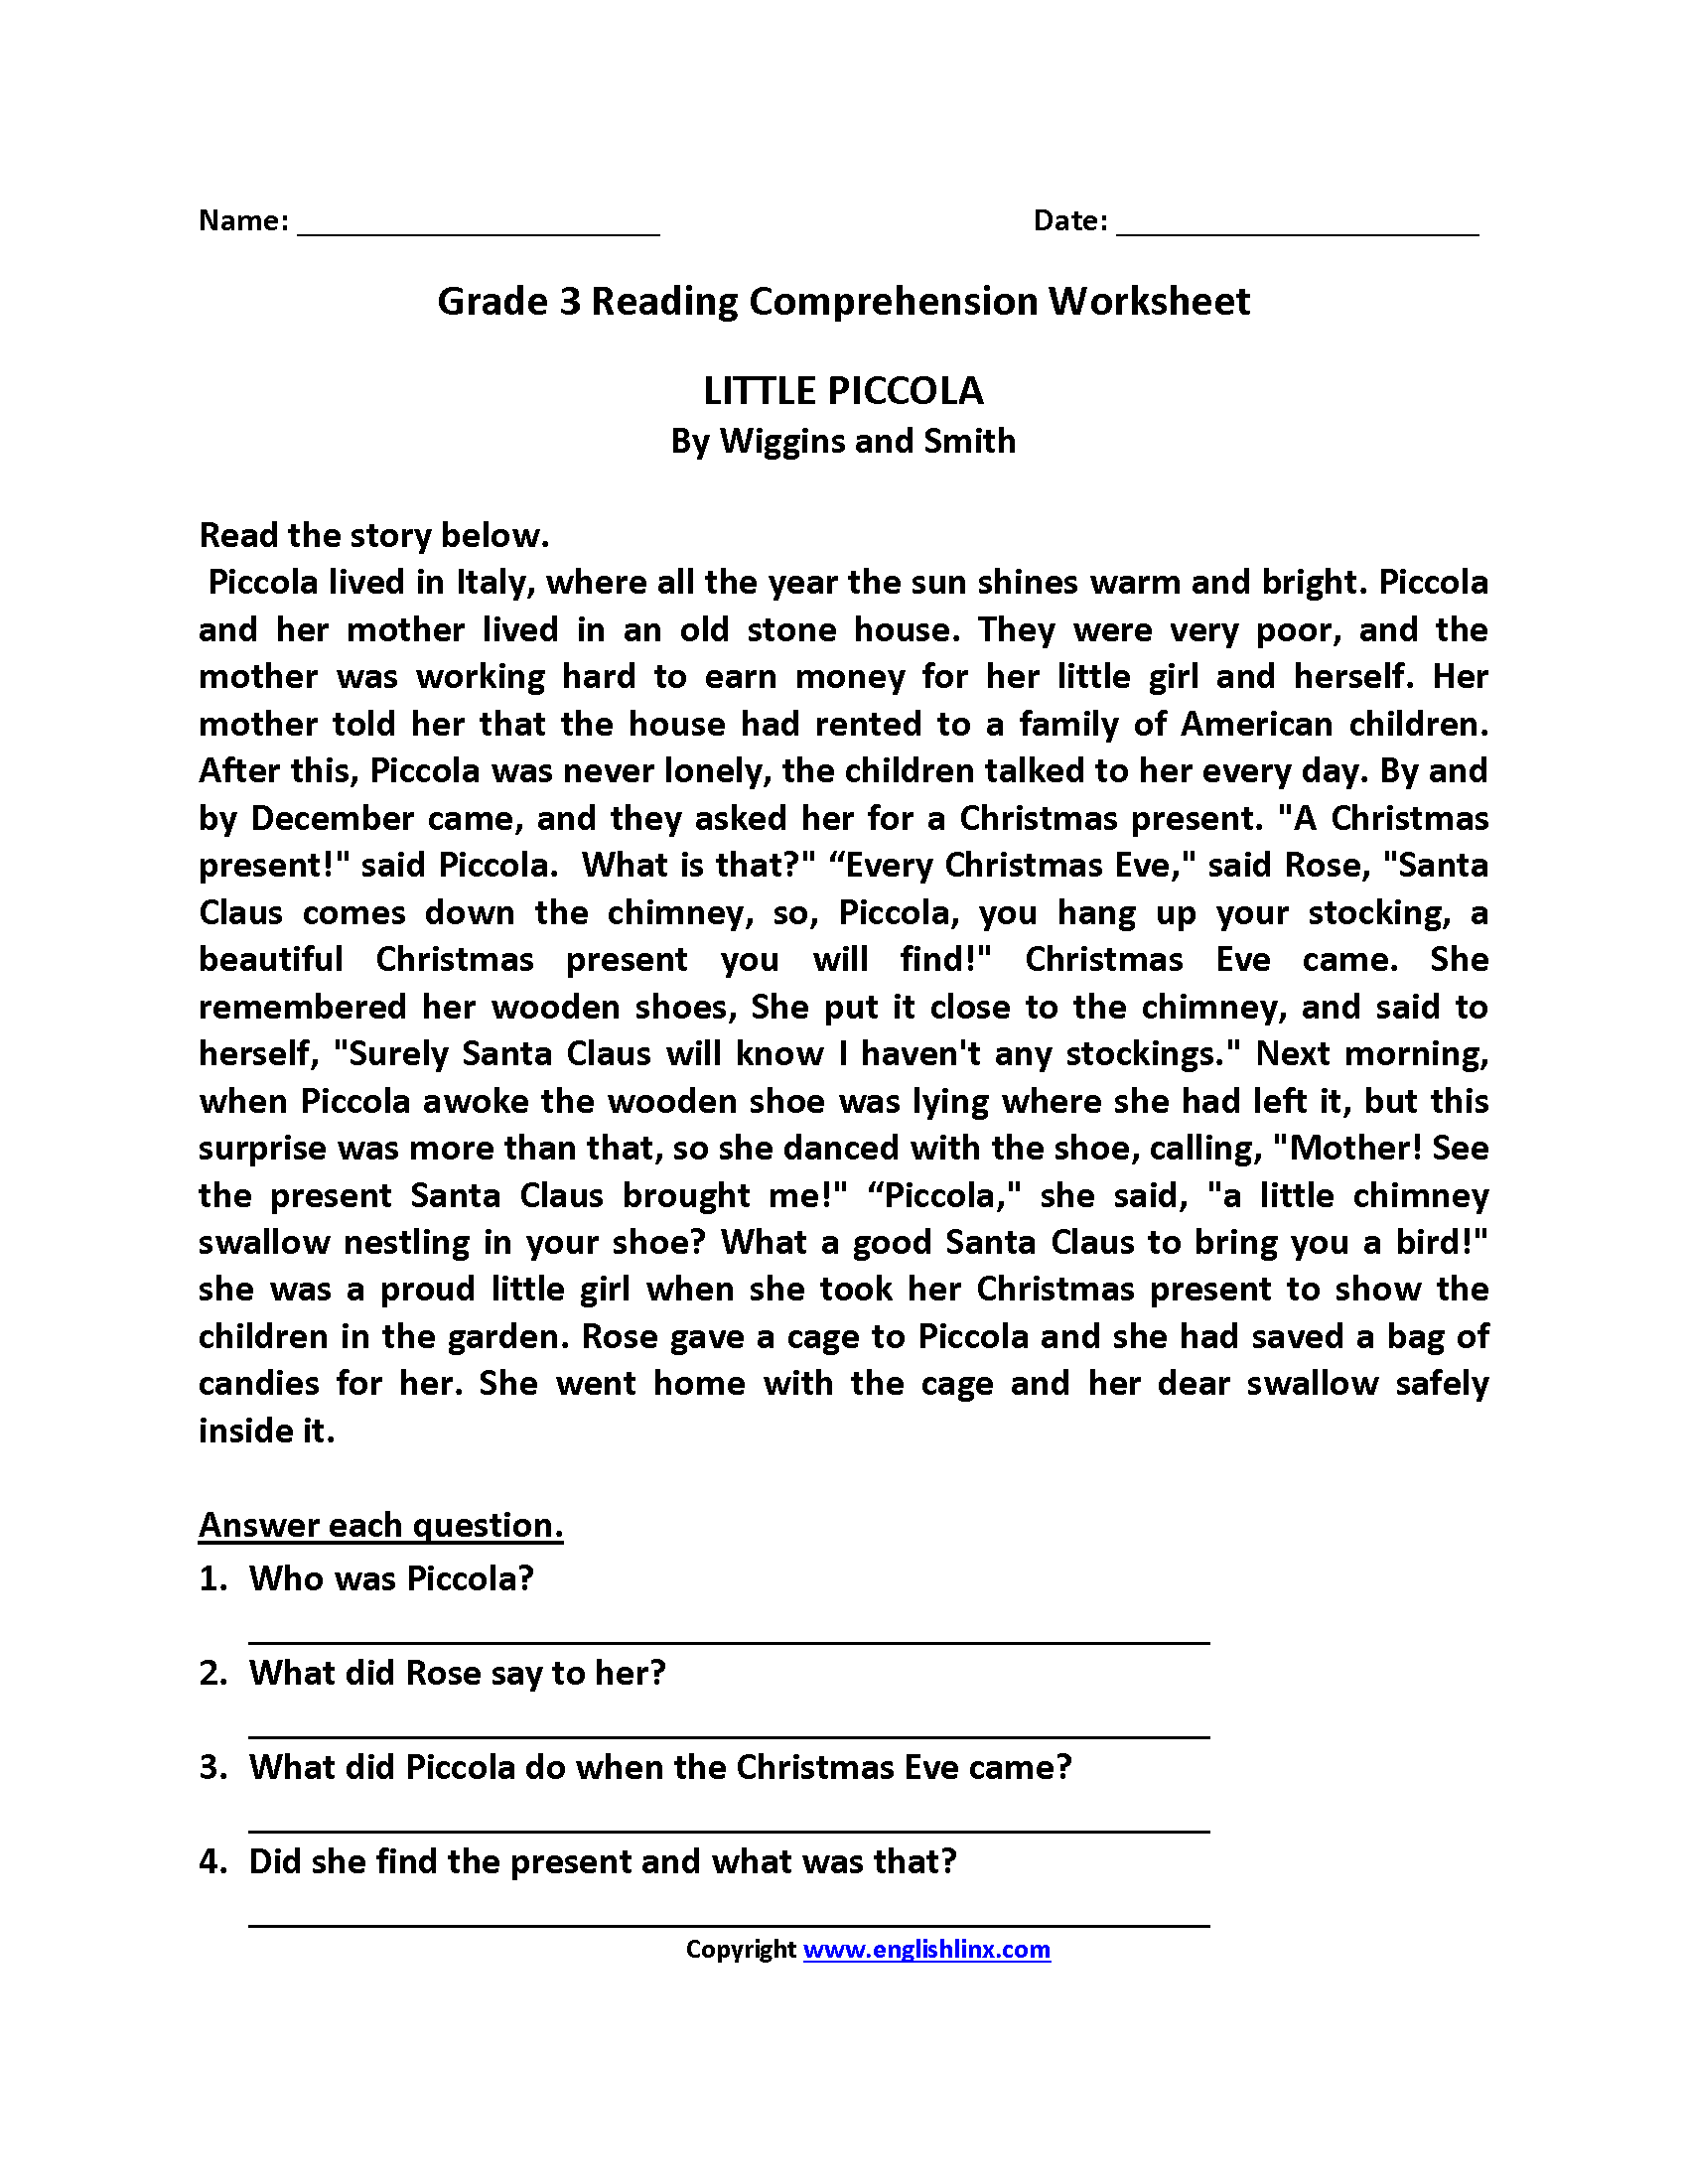 Earth Day Printable Worksheets  3rd grade    Teaching Math  Reading together with Reading  prehension   engelsd   Pinterest   Reading  prehension likewise Wonders Second Grade Unit Four Week One Printouts further Reading Worksheets   Third Grade Reading Worksheets likewise 3rd Grade  mon Core   Reading Literature Worksheets as well ela reading worksheets – spechp info likewise mon Core Sheets as well venn diagram sheet   Seroton ponderresearch co besides Capacity Worksheets furthermore Text Based Evidence Worksheets Reading Poetry Main Idea And Textual as well 3rd grade Reading  Writing Worksheets  Reading  prehension  myth also Use Your Mind and Visualize    Lesson Plan   Education     Lesson besides Reading Worksheets   Third Grade Reading Worksheets additionally Grade 4 Math Worksheets On Patterning For 3rd Reading 1st Grader likewise  likewise Reading Worksheets   Third Grade Reading Worksheets. on reading worksheets for 3rd grade